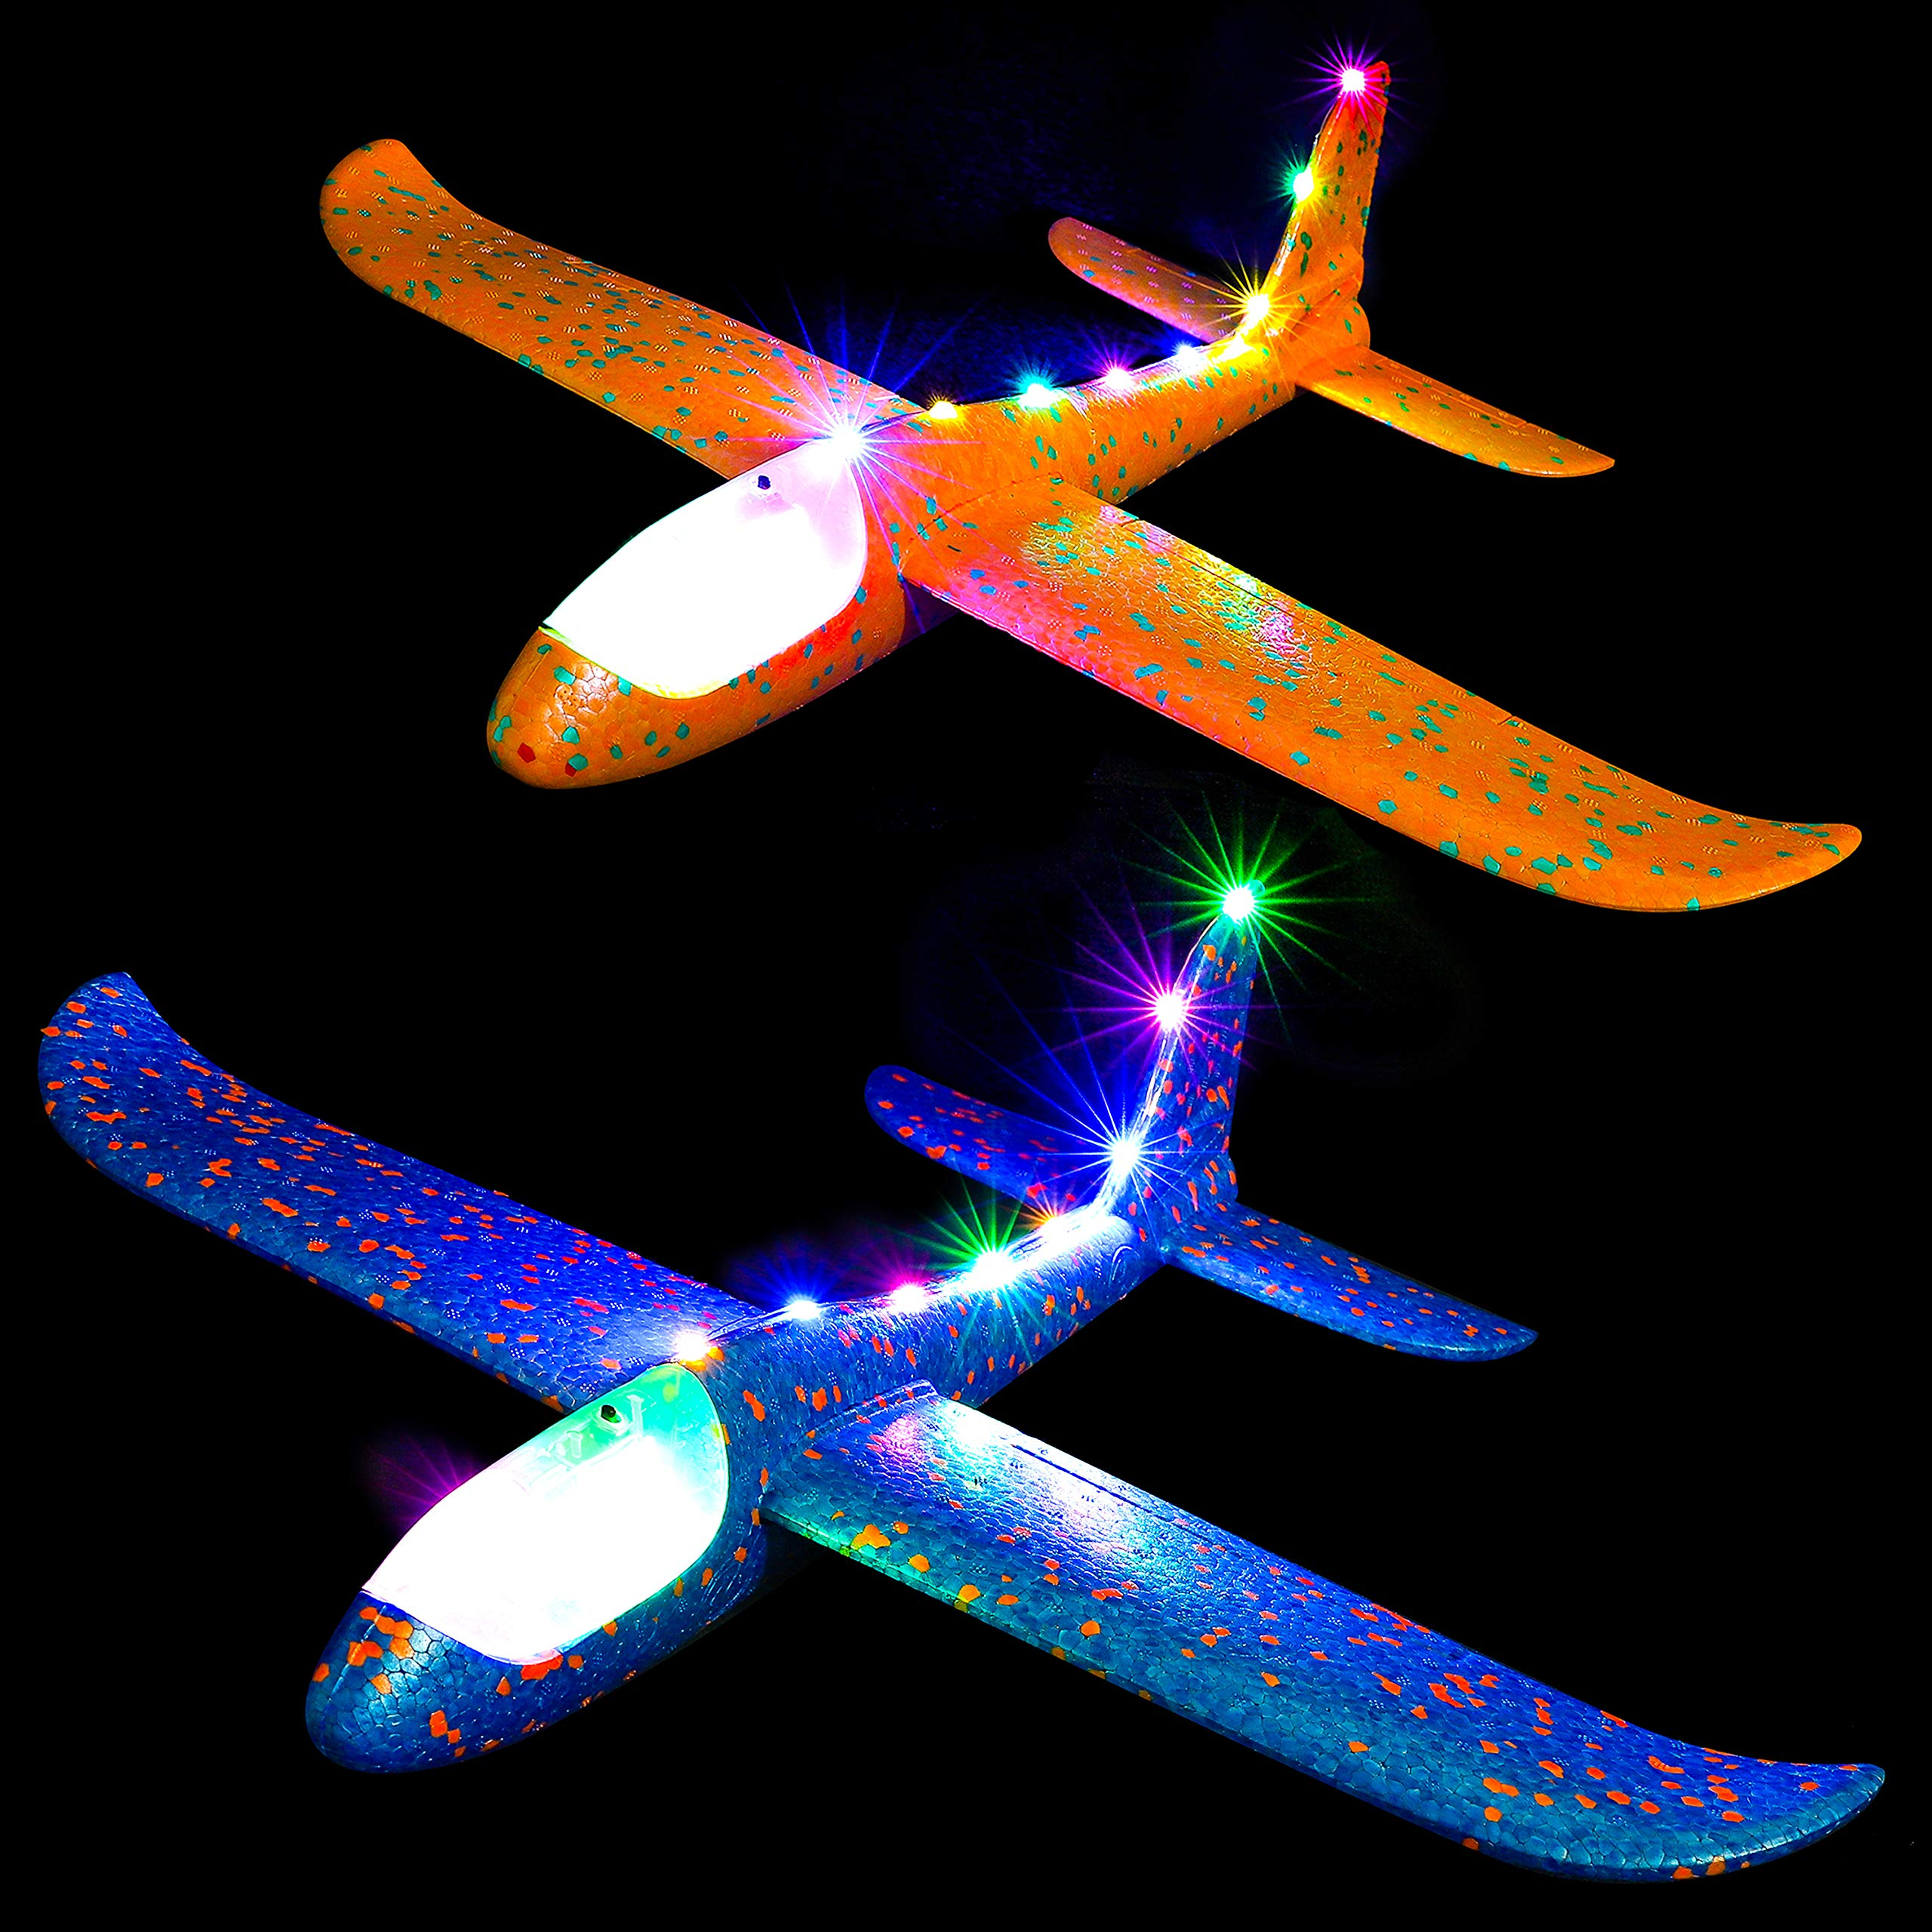 WATINC 2 Pcs 20inch Airplane with Colorful Light Manual Foam Flying Glider Planes Throwing Fun Challenging Games Outdoor Sports Toy Model Airplanes Blue Orange Foam Aircraft for Boys Girls by WATINC